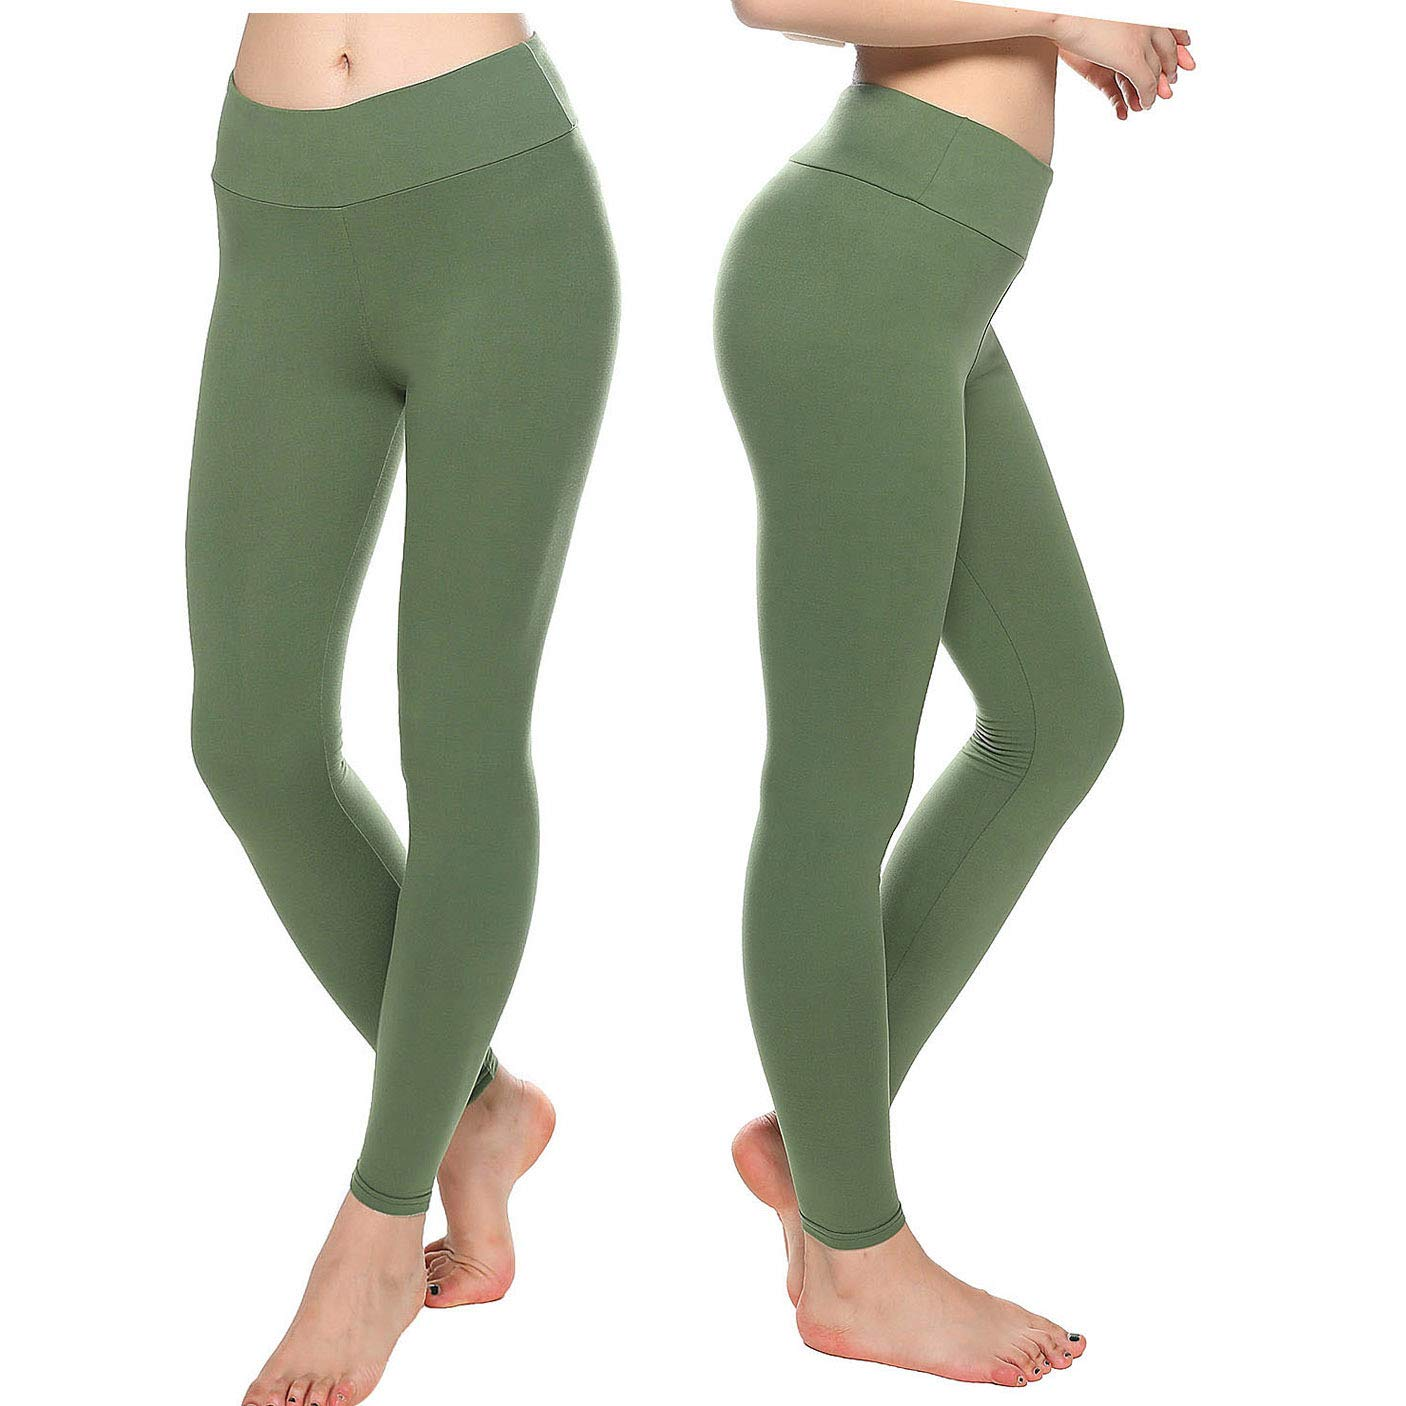 90f82d804004e6 KT Super Soft Buttery Leggings - High Waisted Slimming Leggings - Womens  Tummy Control Pants (Plus Size, Olive)